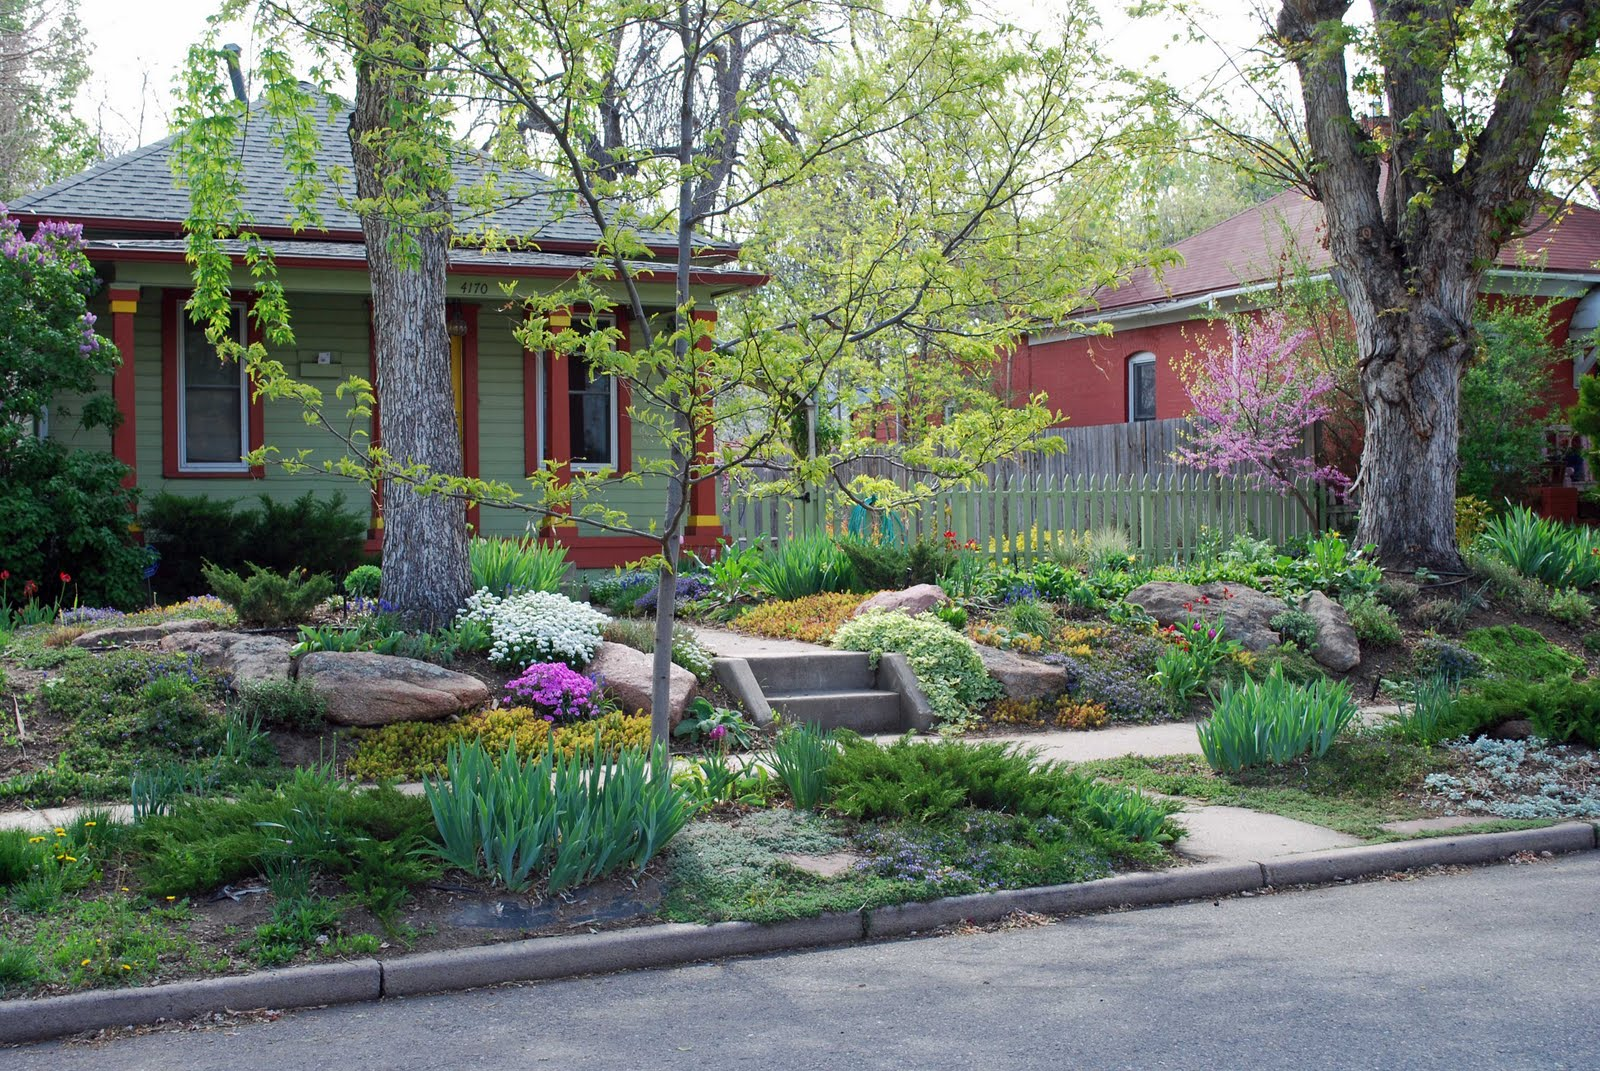 Backyard Landscape Ideas With No Grass : The art garden designers roundtable lawn alternatives